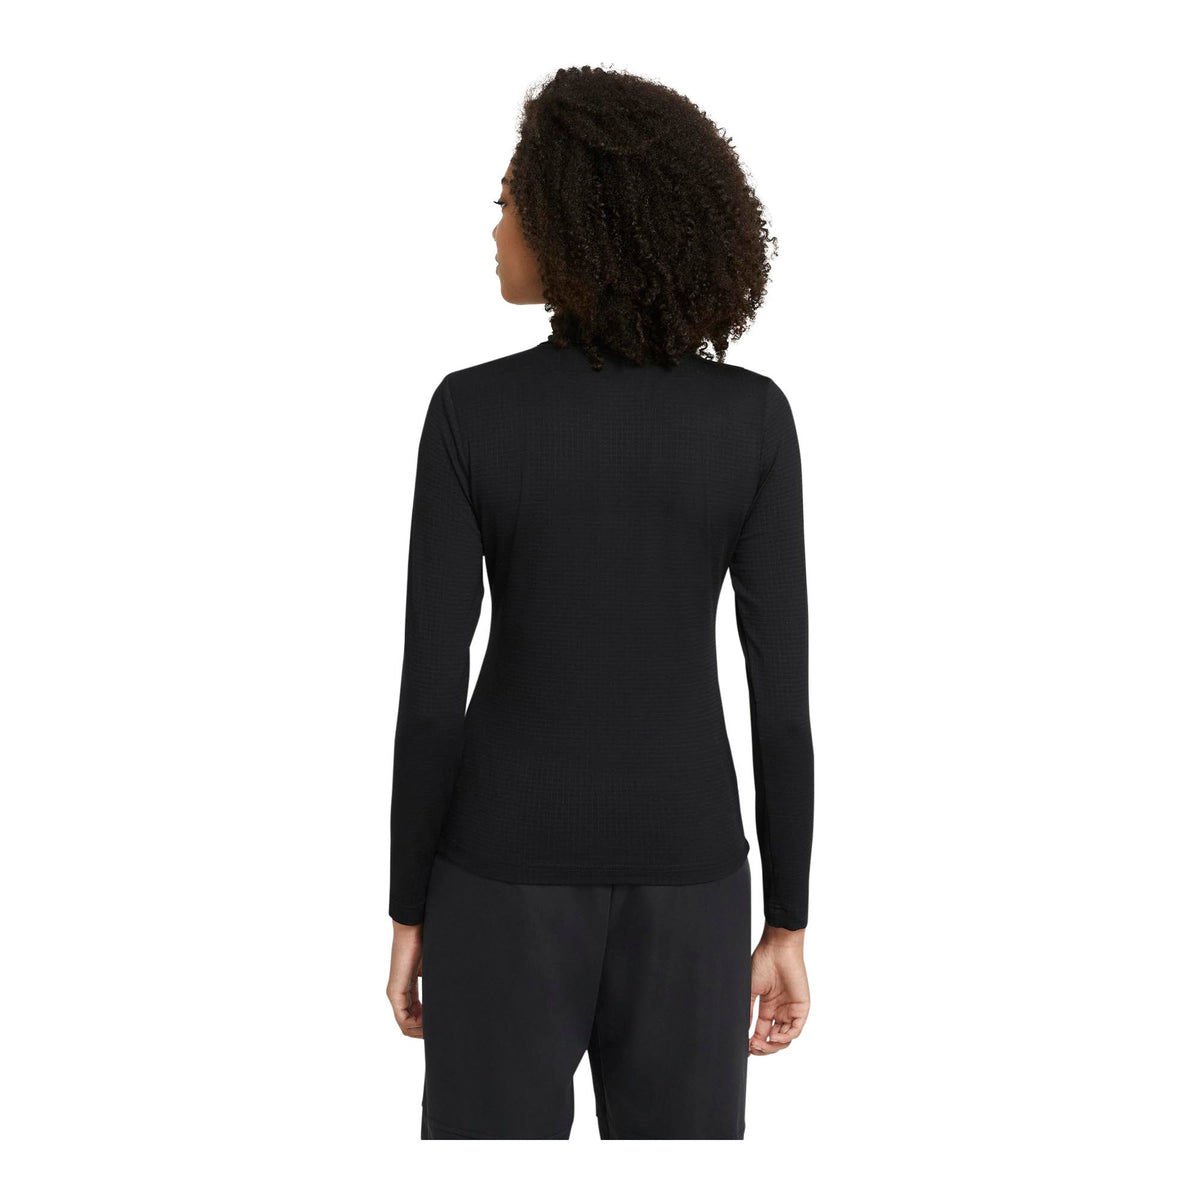 Nike Sportswear Swoosh Women's Long-Sleeve Top